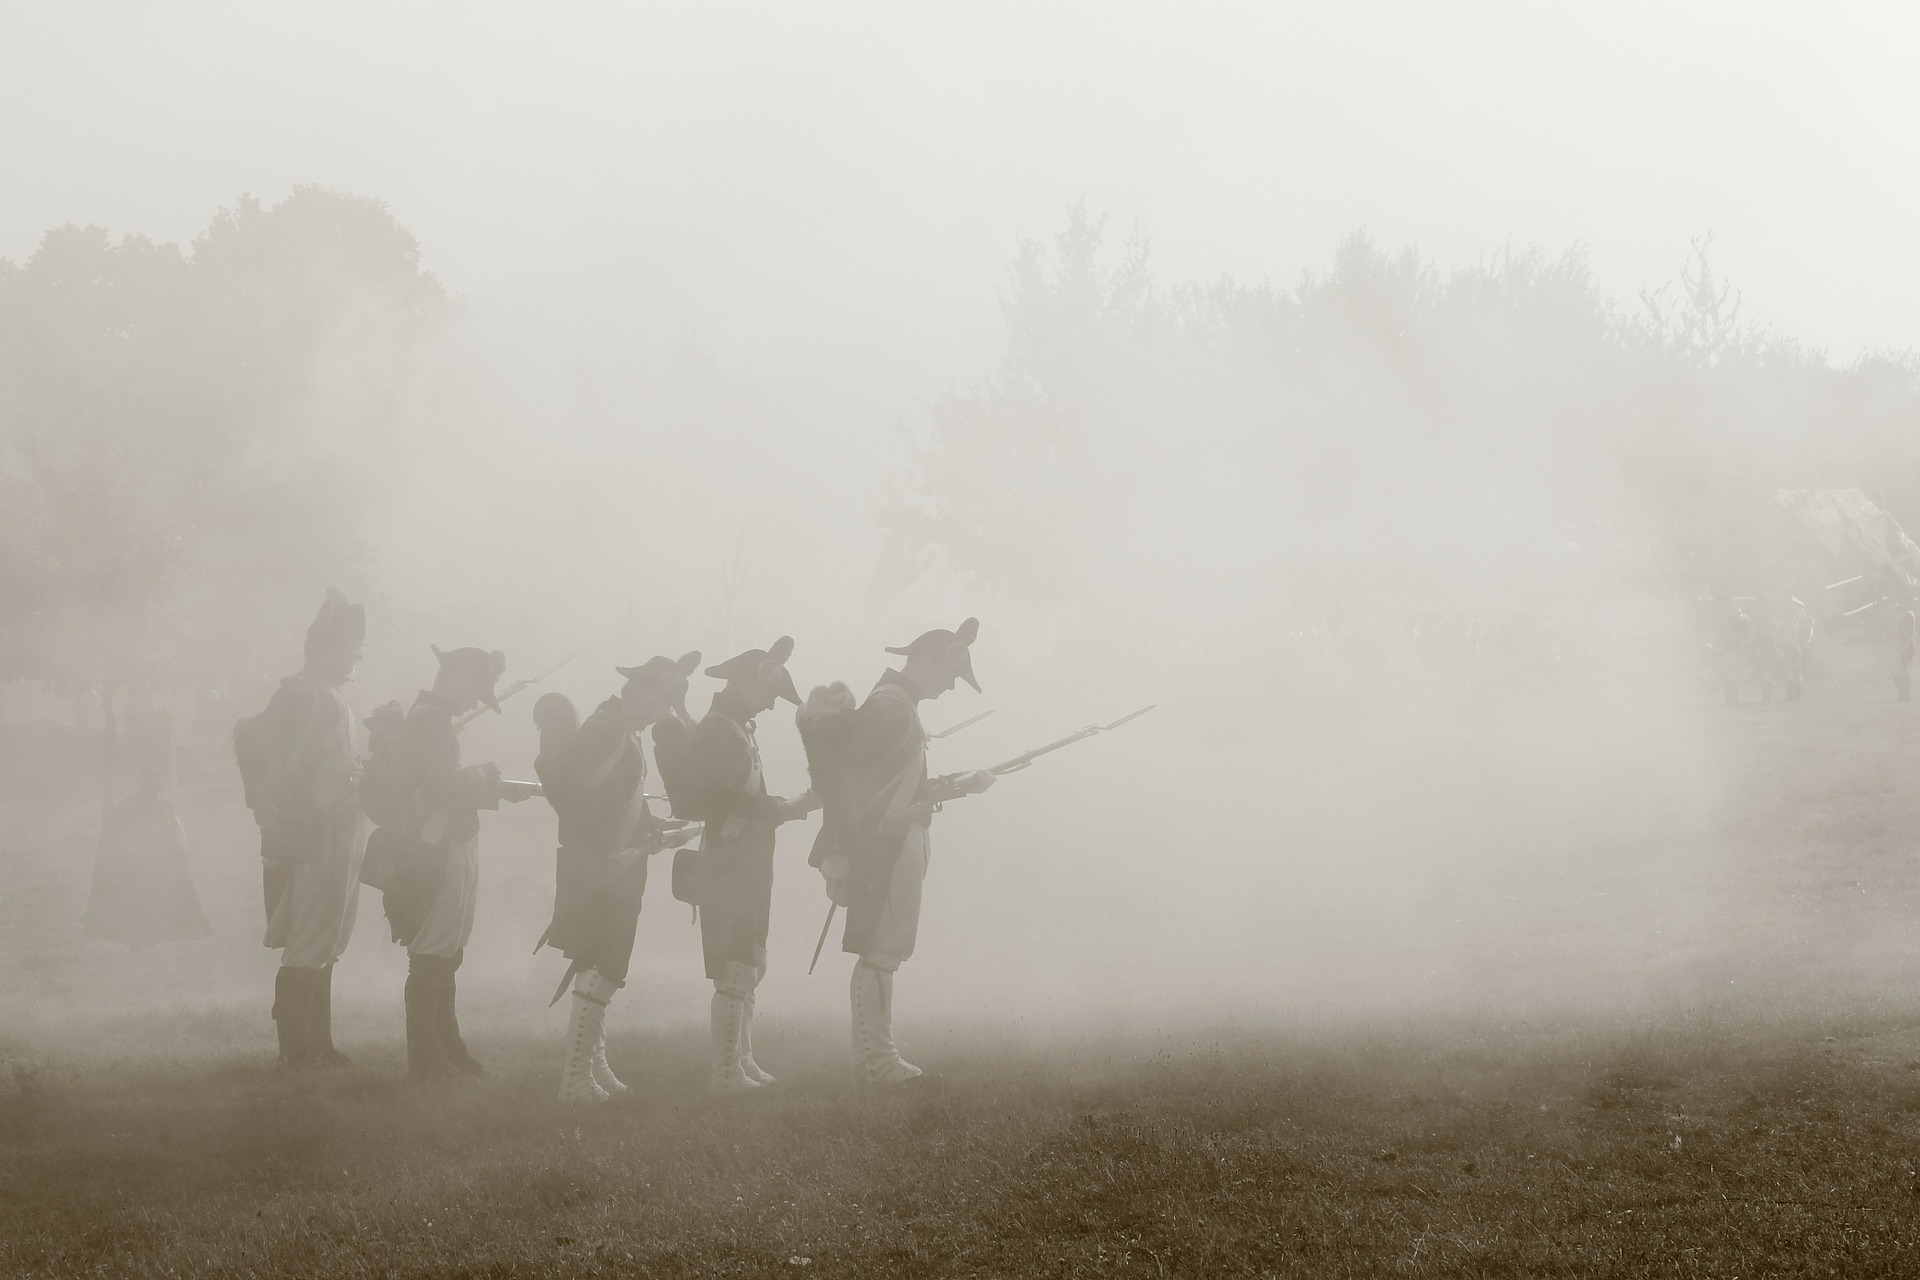 Napoleonic soldiers standing in a mist